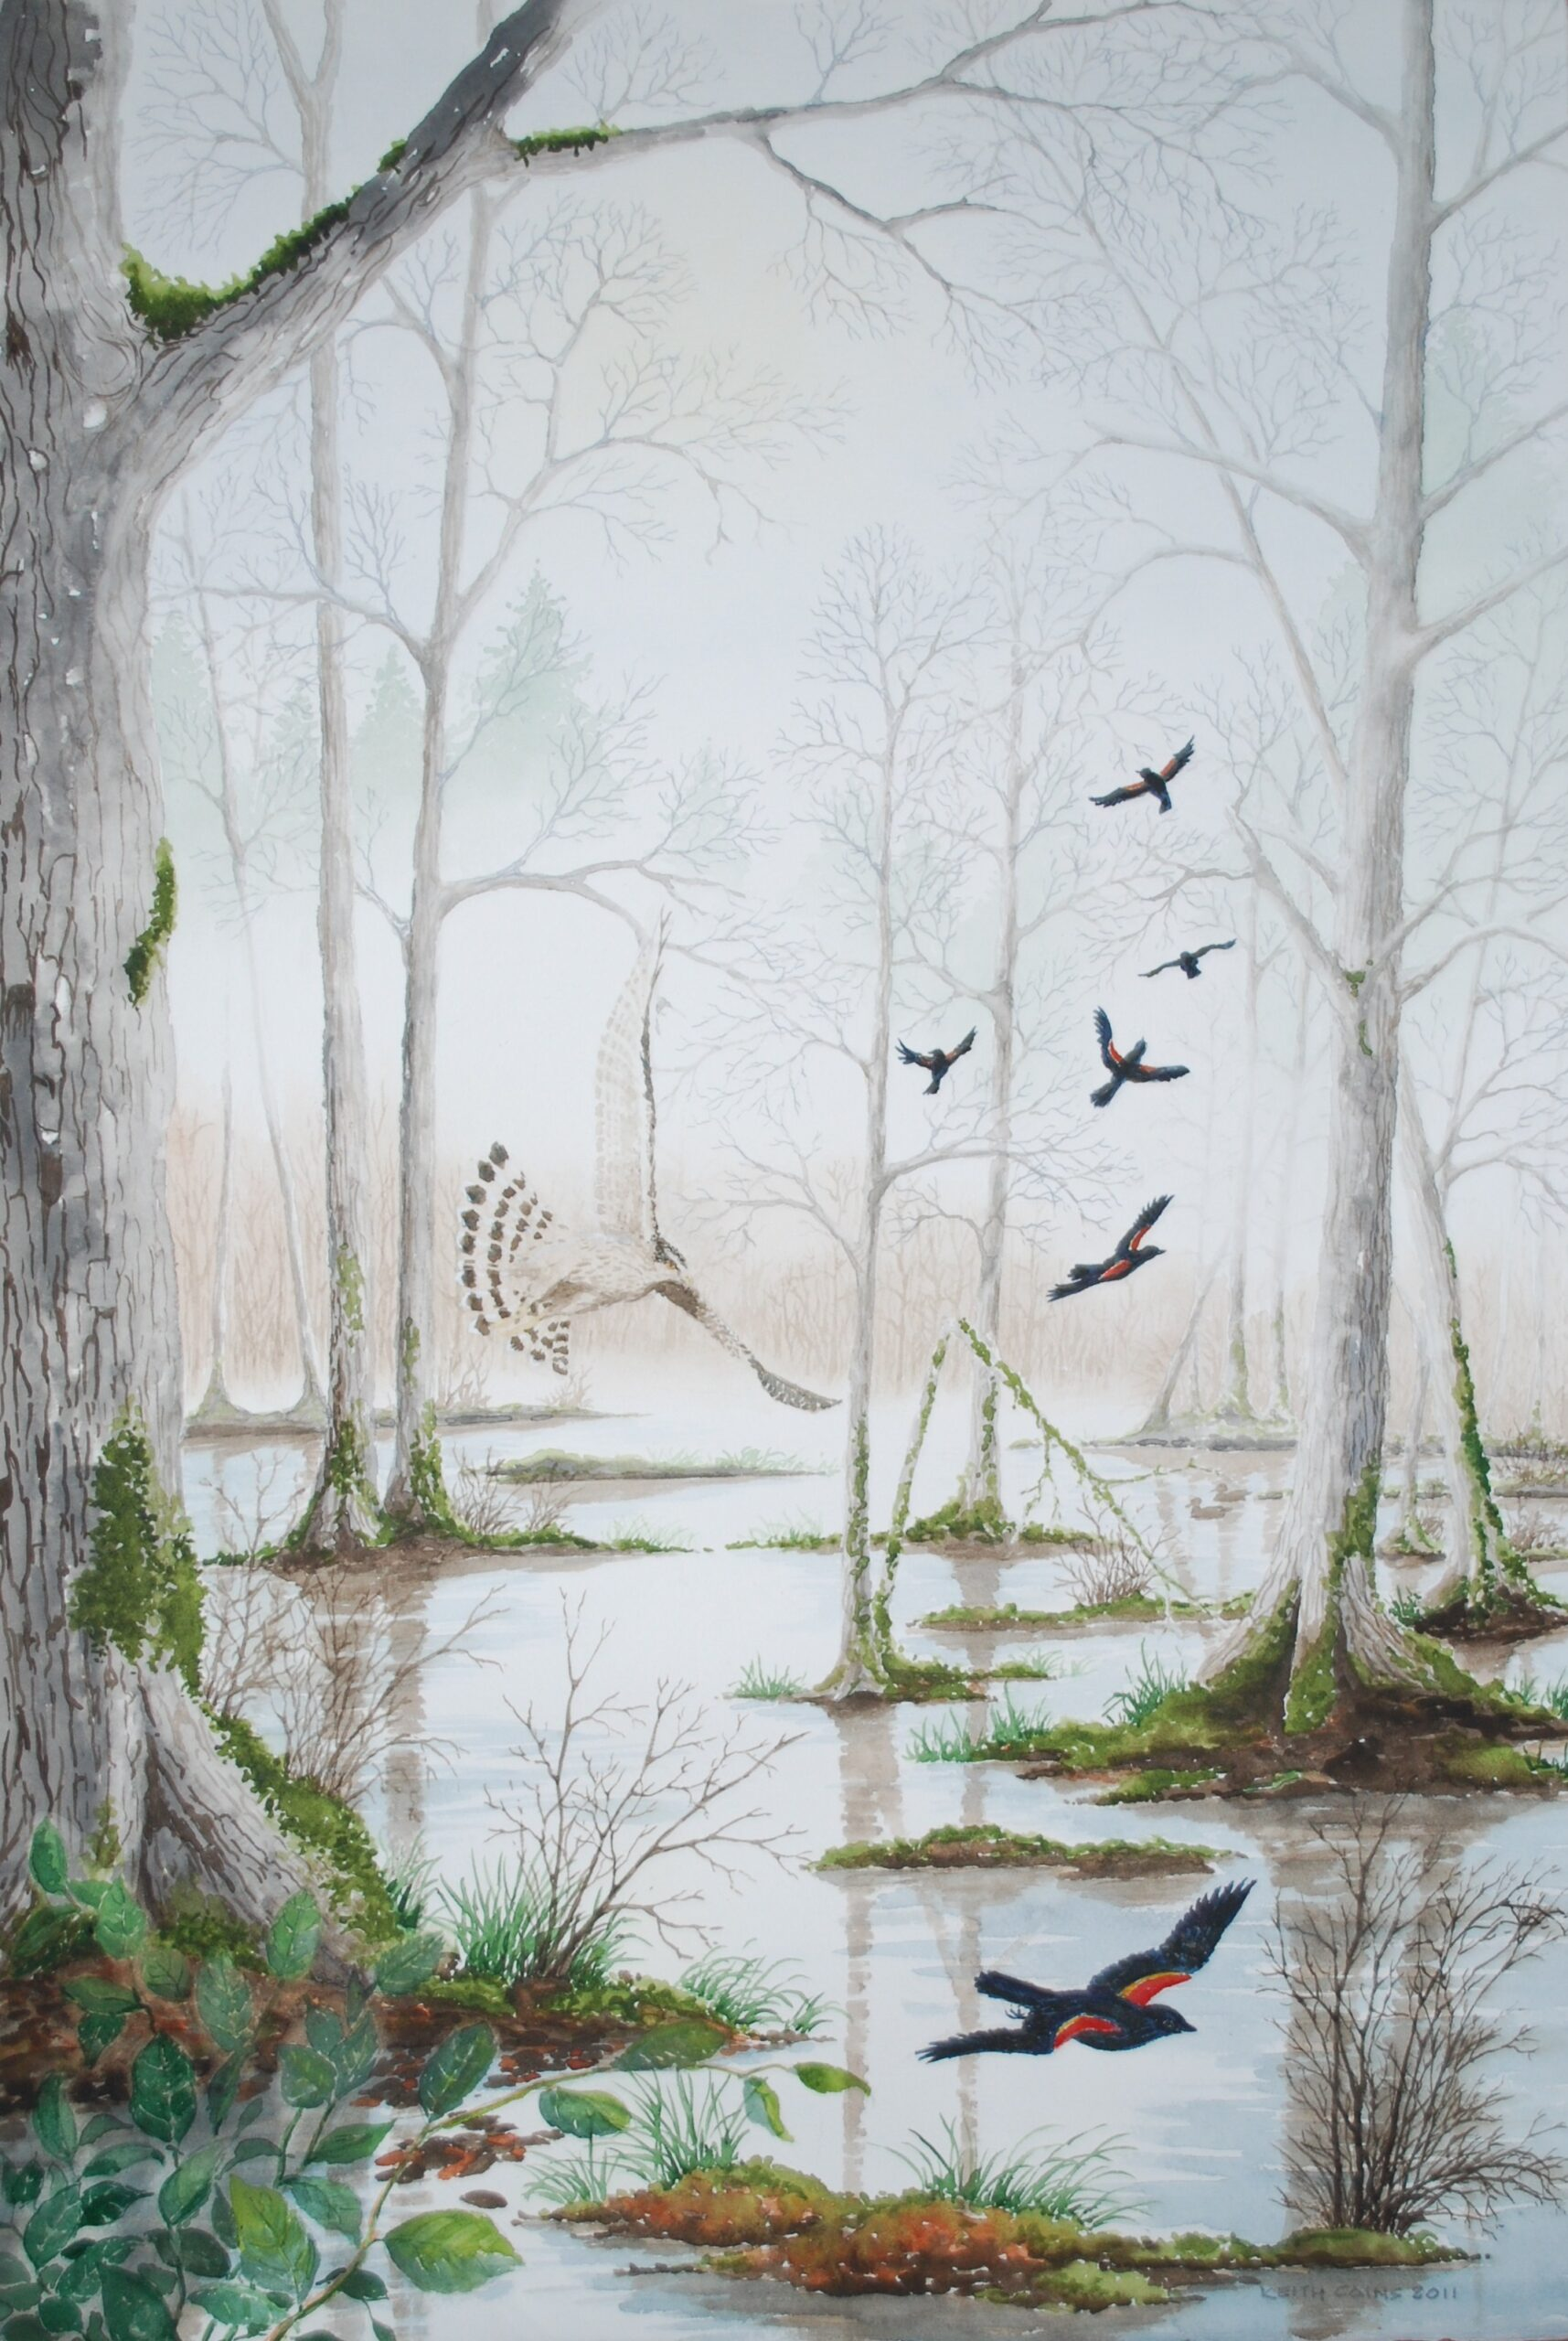 A water colour painting of a goshawk and some redwing blackbirds in a forest setting by Keith Cains.